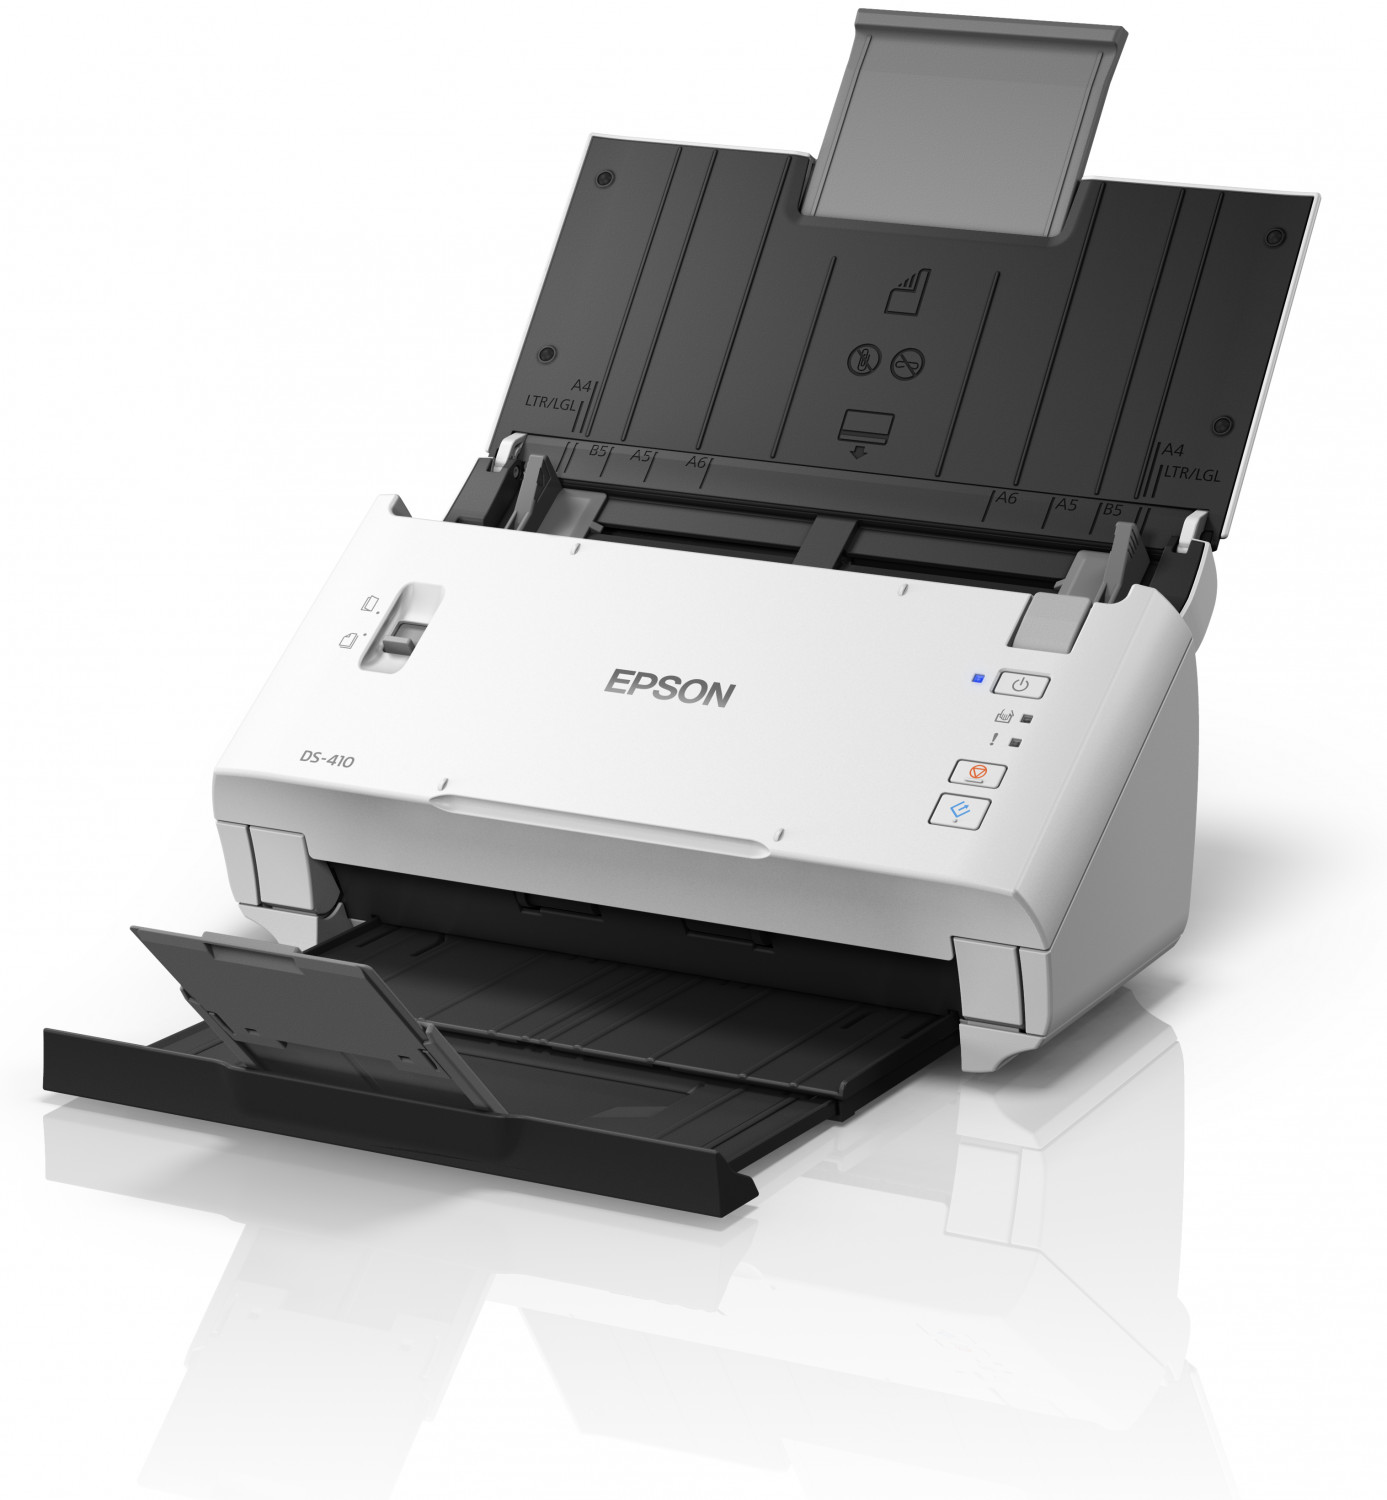 Epson WorkForce DS410 Scanner